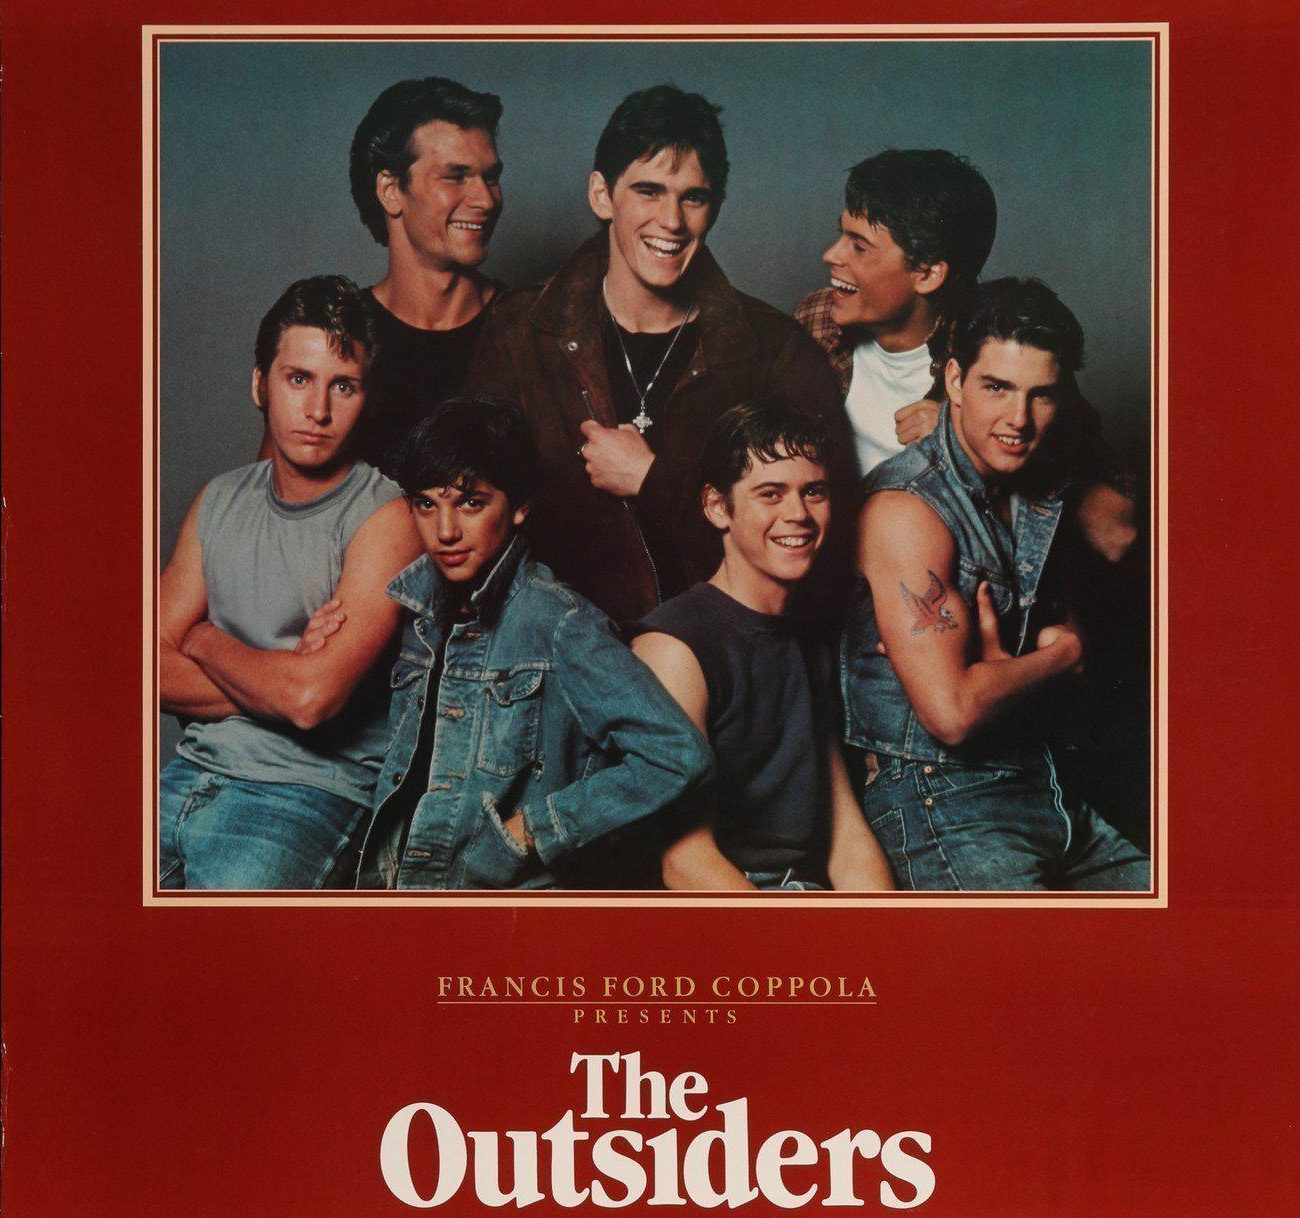 the outsiders vintage movie poster original 1 sheet 27x41 6999 1356x e1610704658123 20 Things You Probably Didn't Know About The 1983 Film The Outsiders